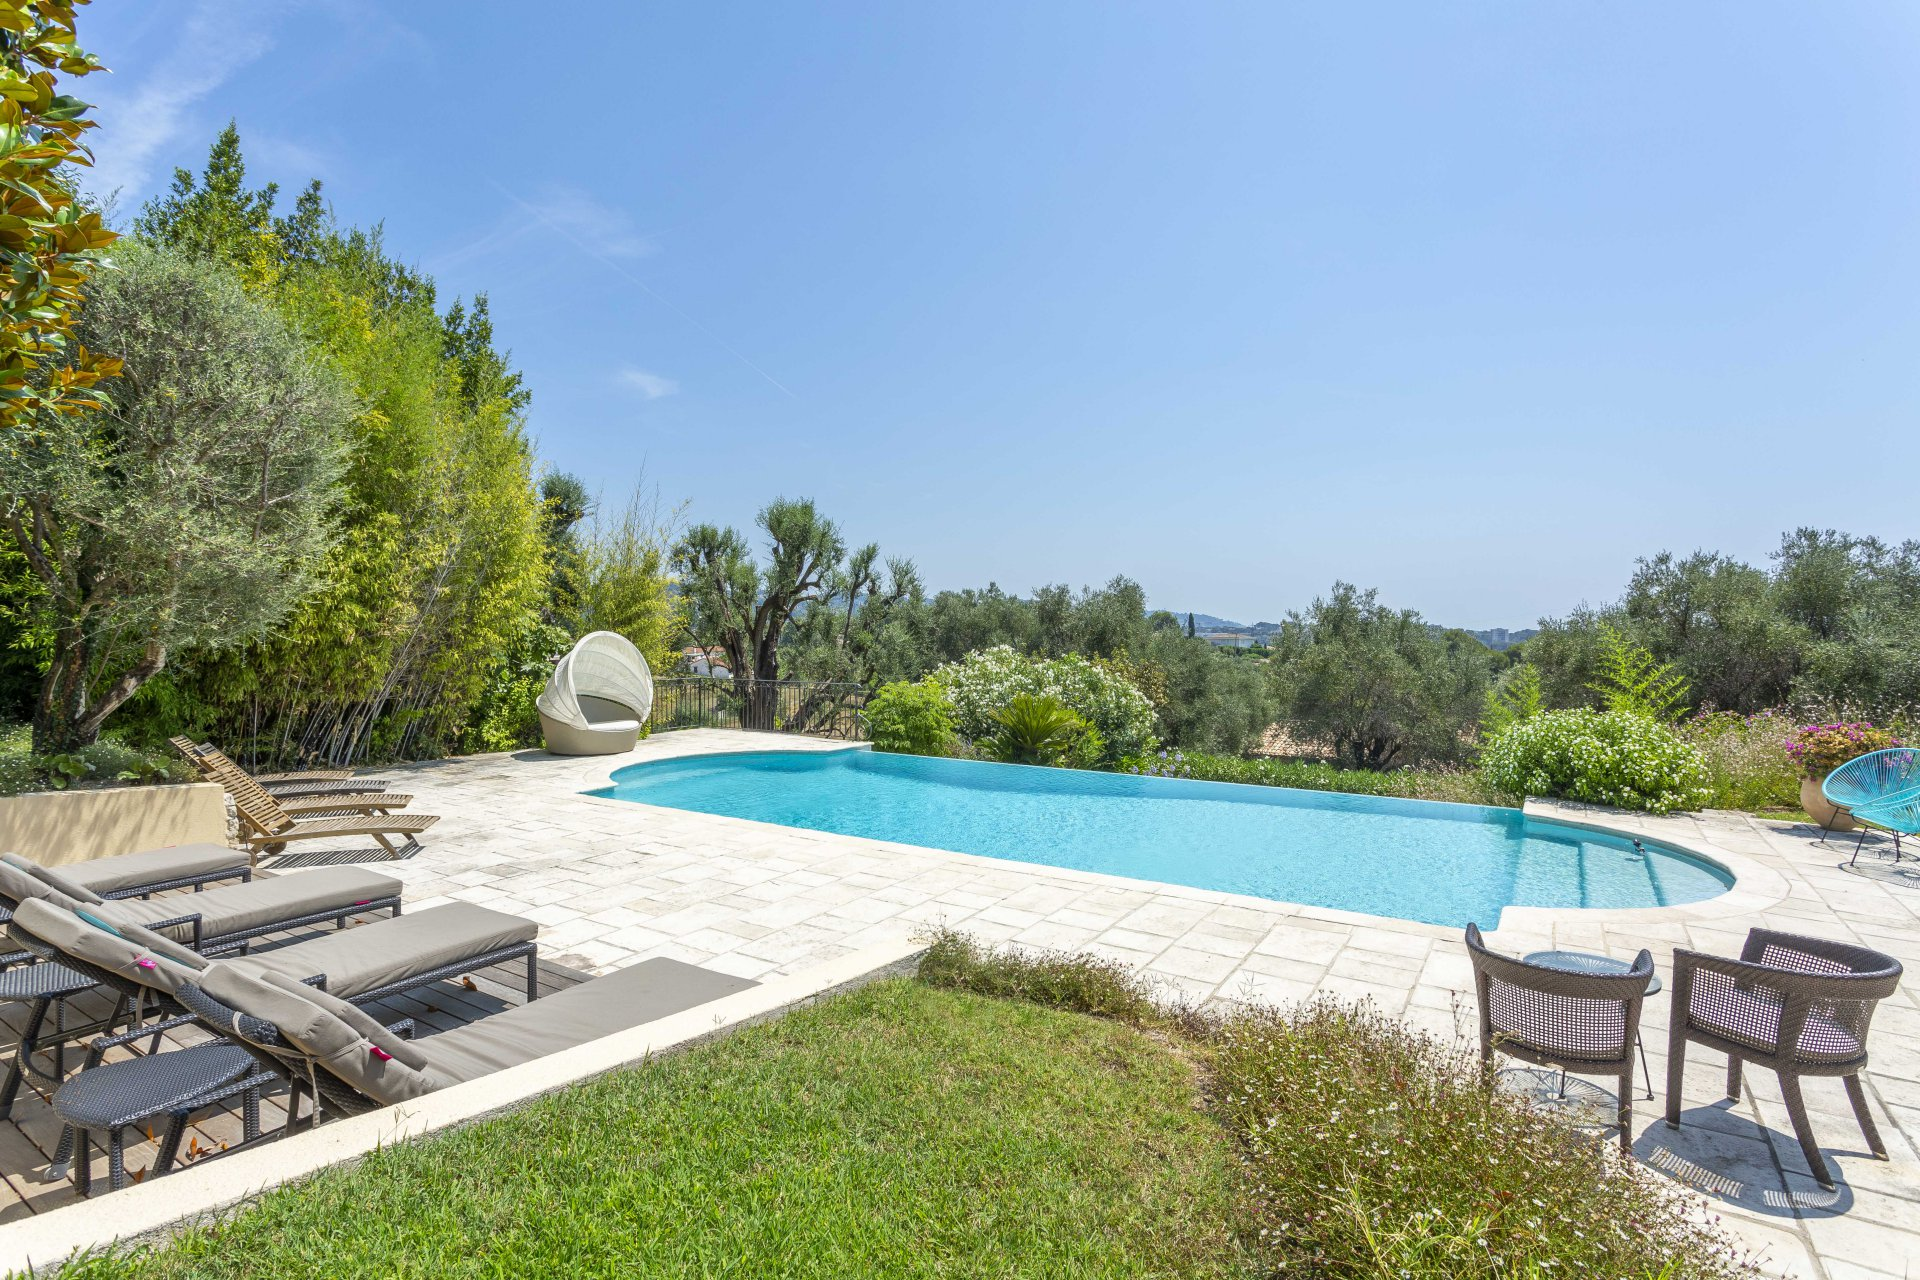 MOUGINS - BEAUTIFUL CONTEMPORARY BASTIDE